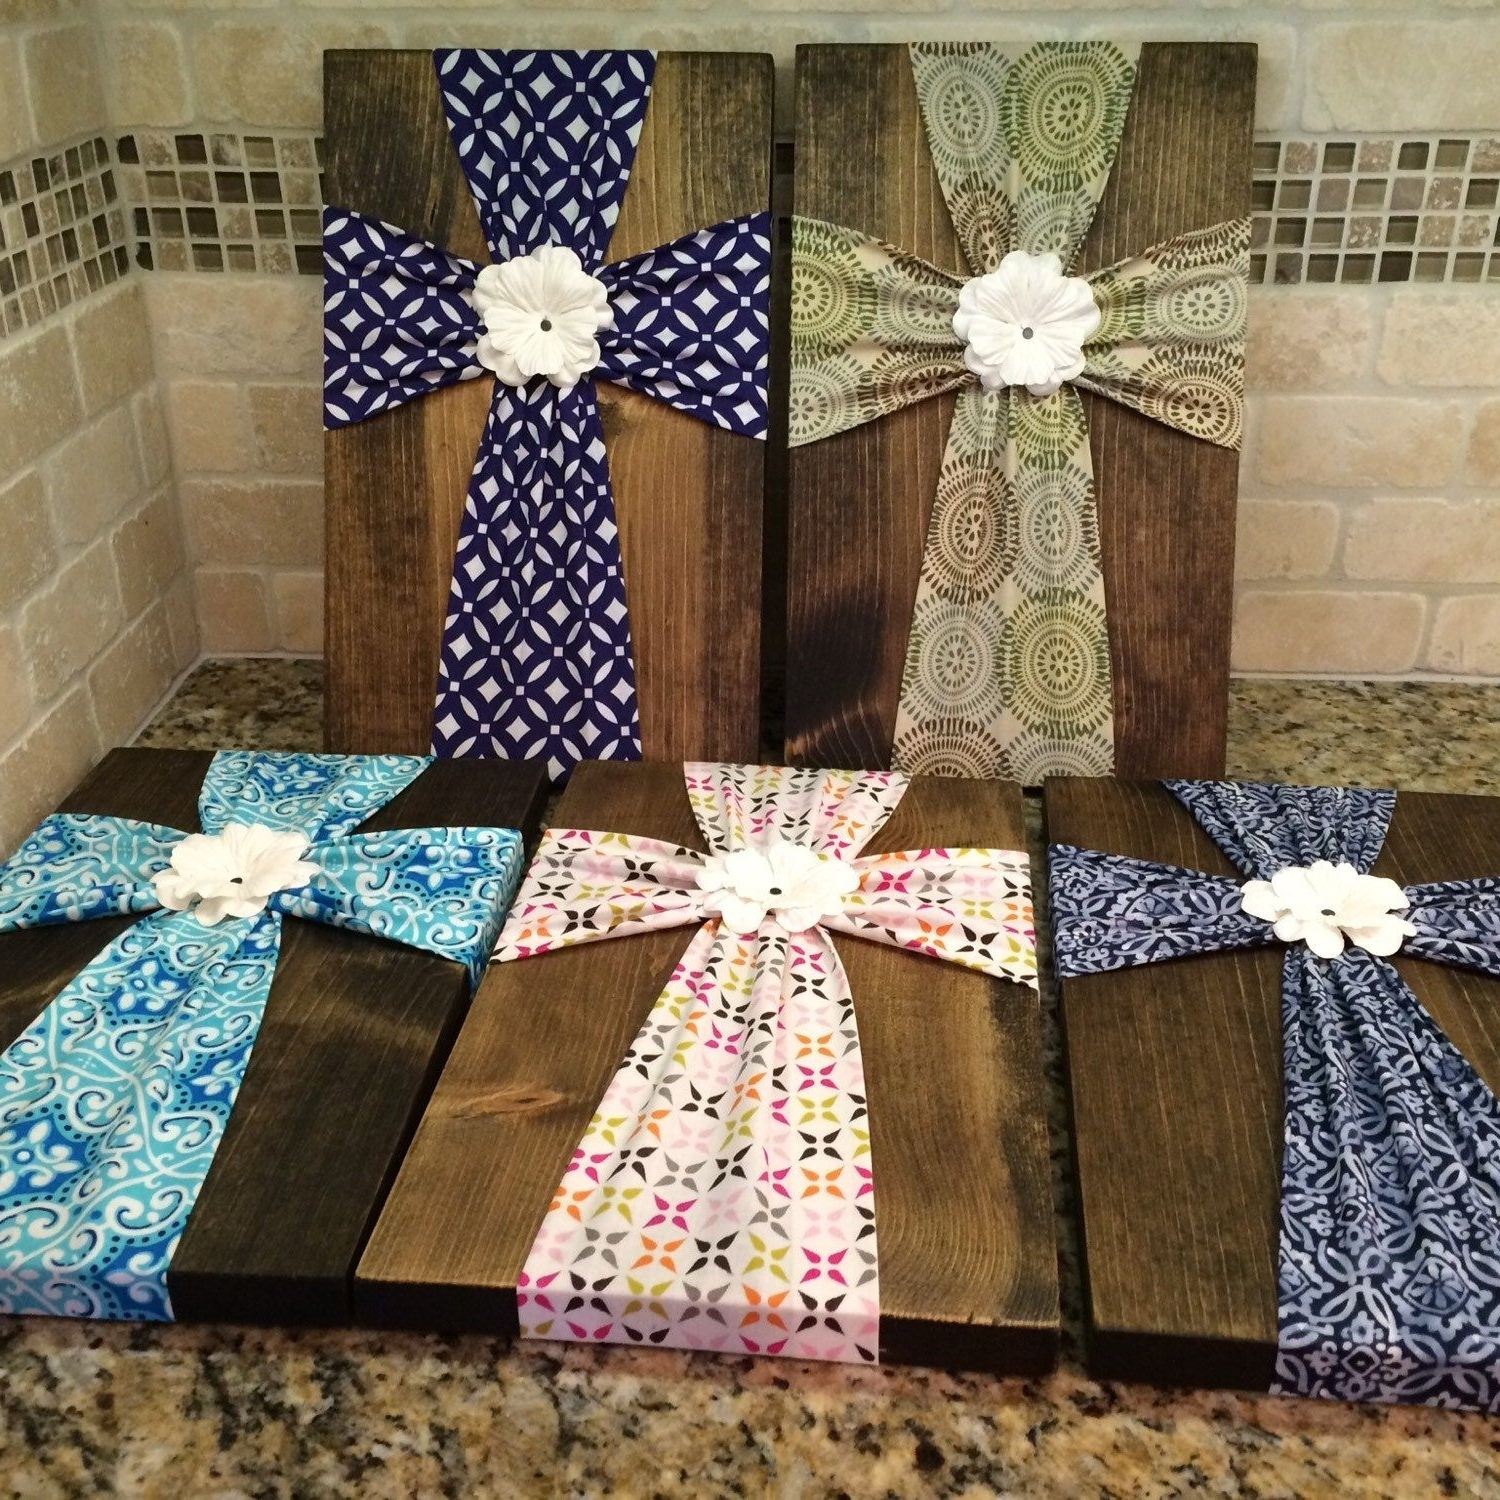 Diy Fabric Cross Wall Art In Newest Wall Art – Fabric Cross On Wood Plaque With Flower Embellishment (View 3 of 15)